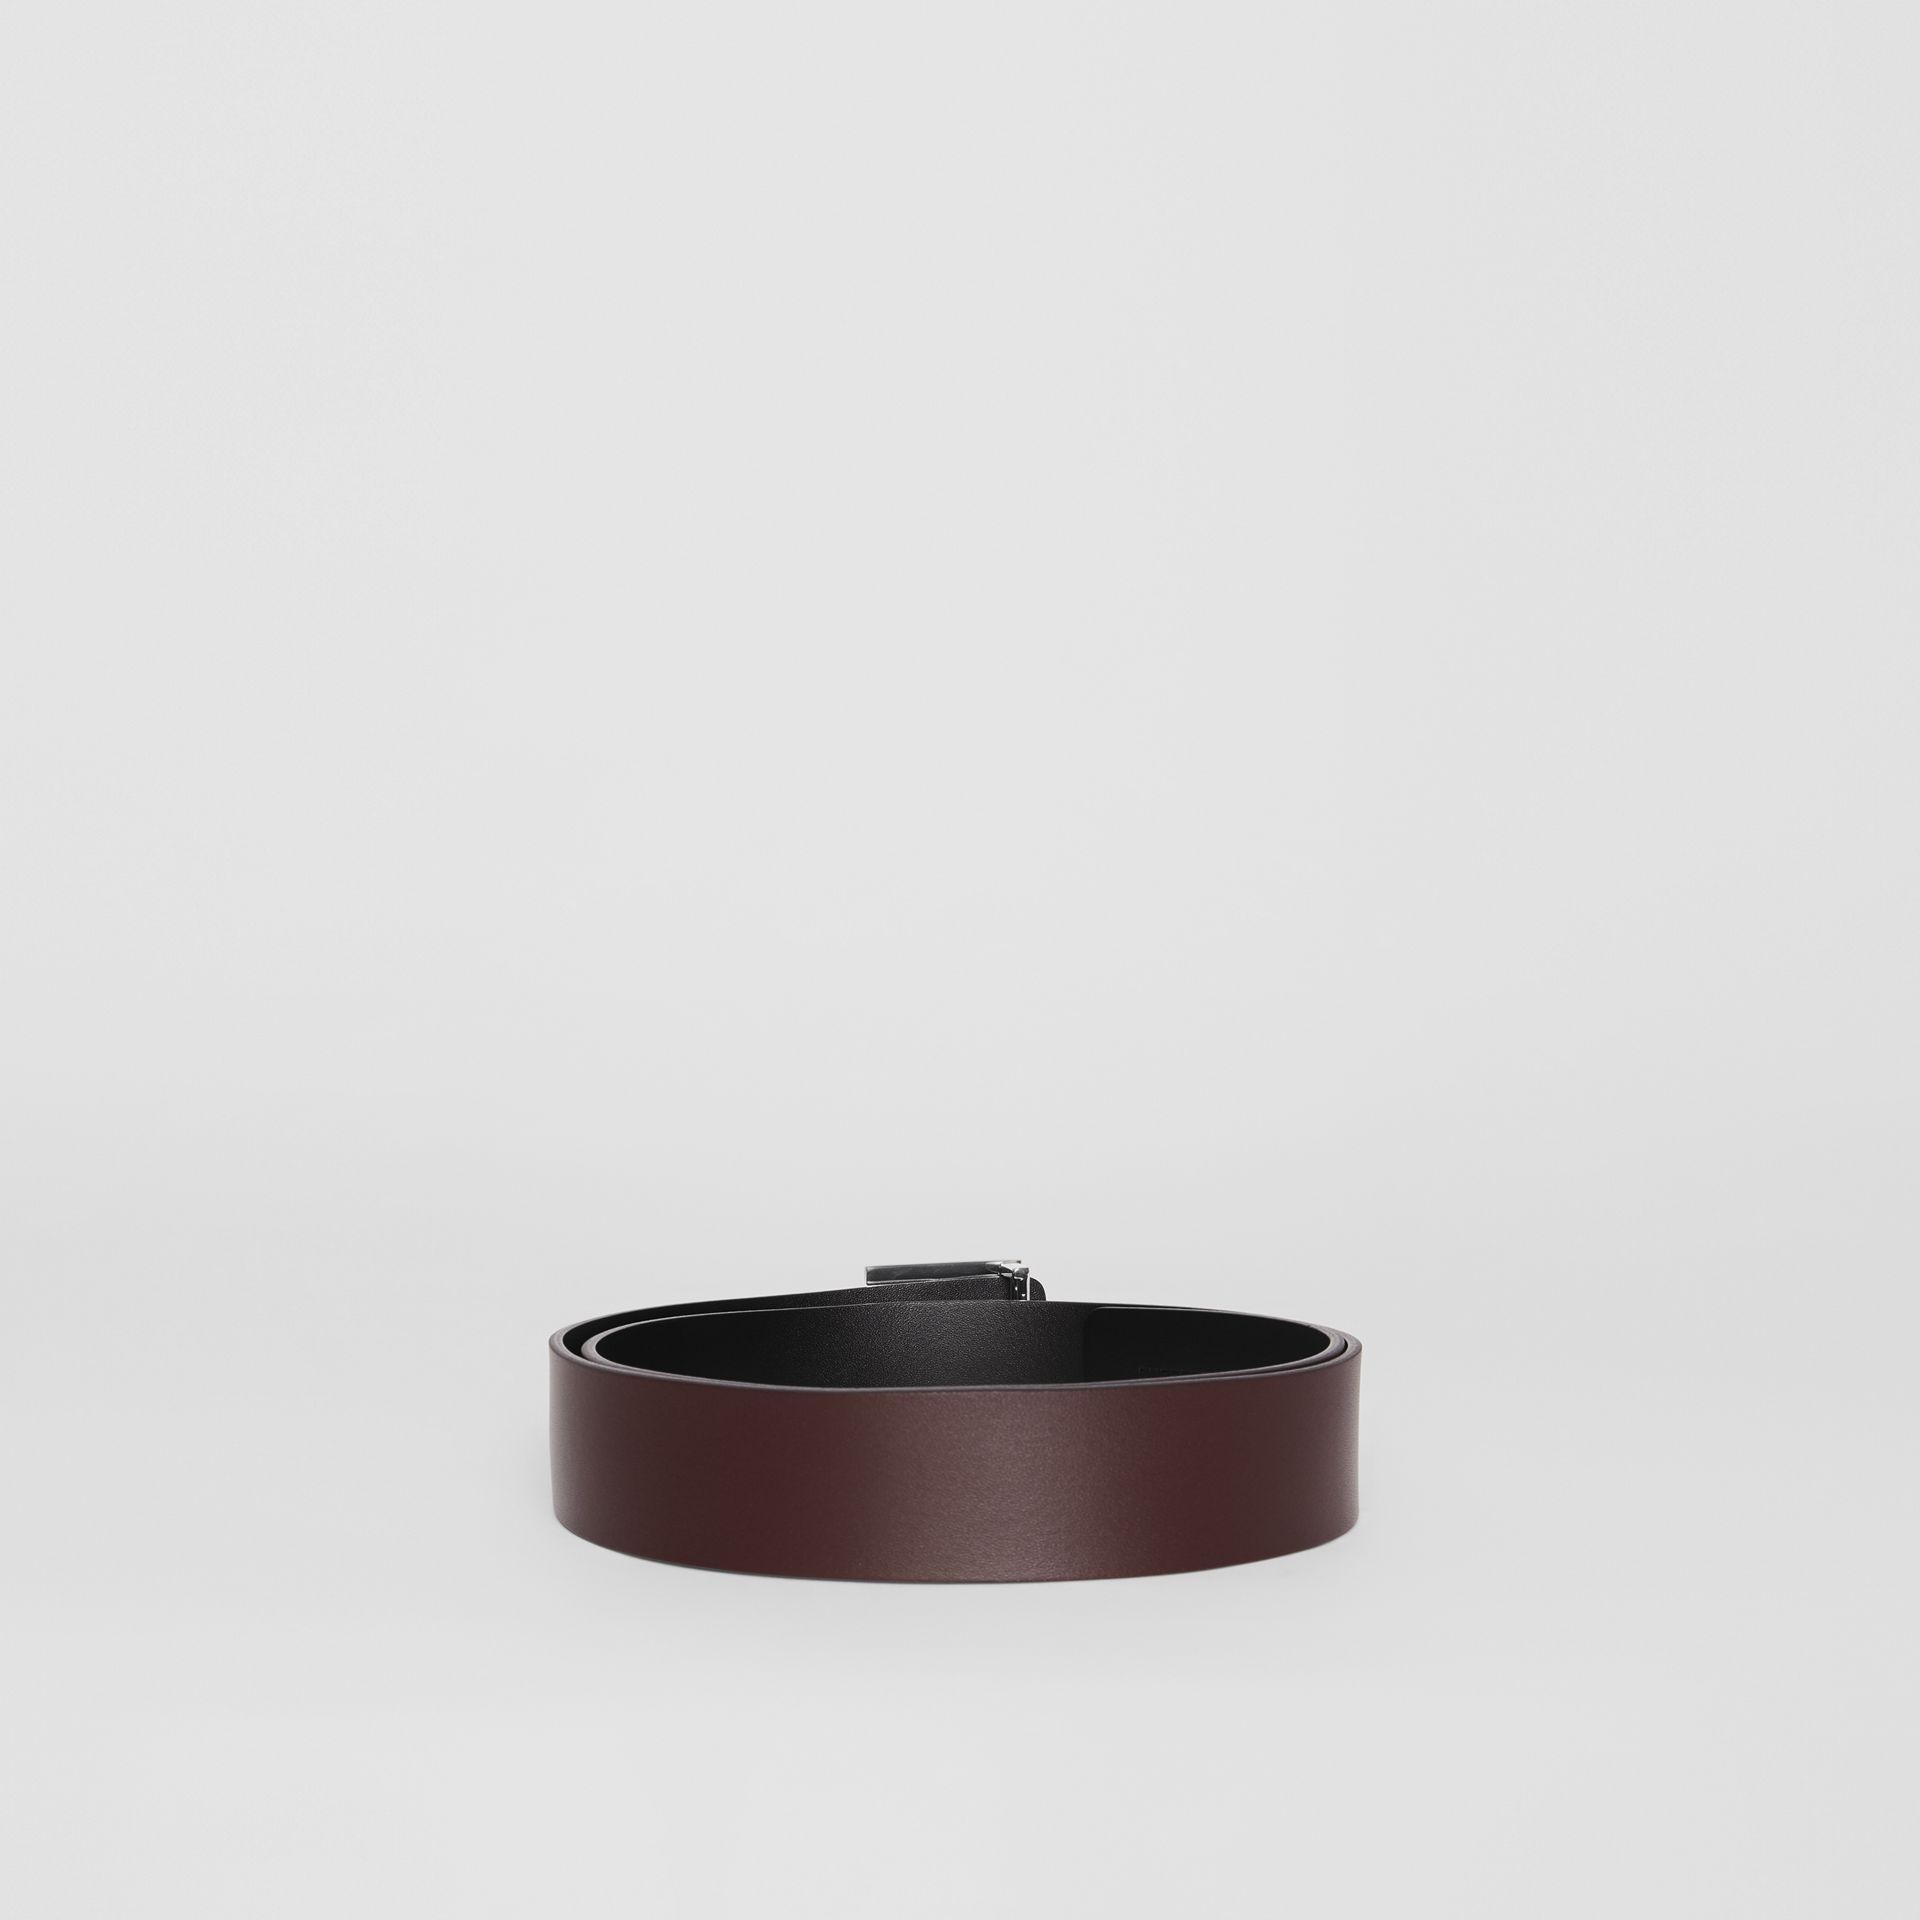 Ceinture en cuir réversible Monogram (Oxblood) - Homme | Burberry Canada - photo de la galerie 3